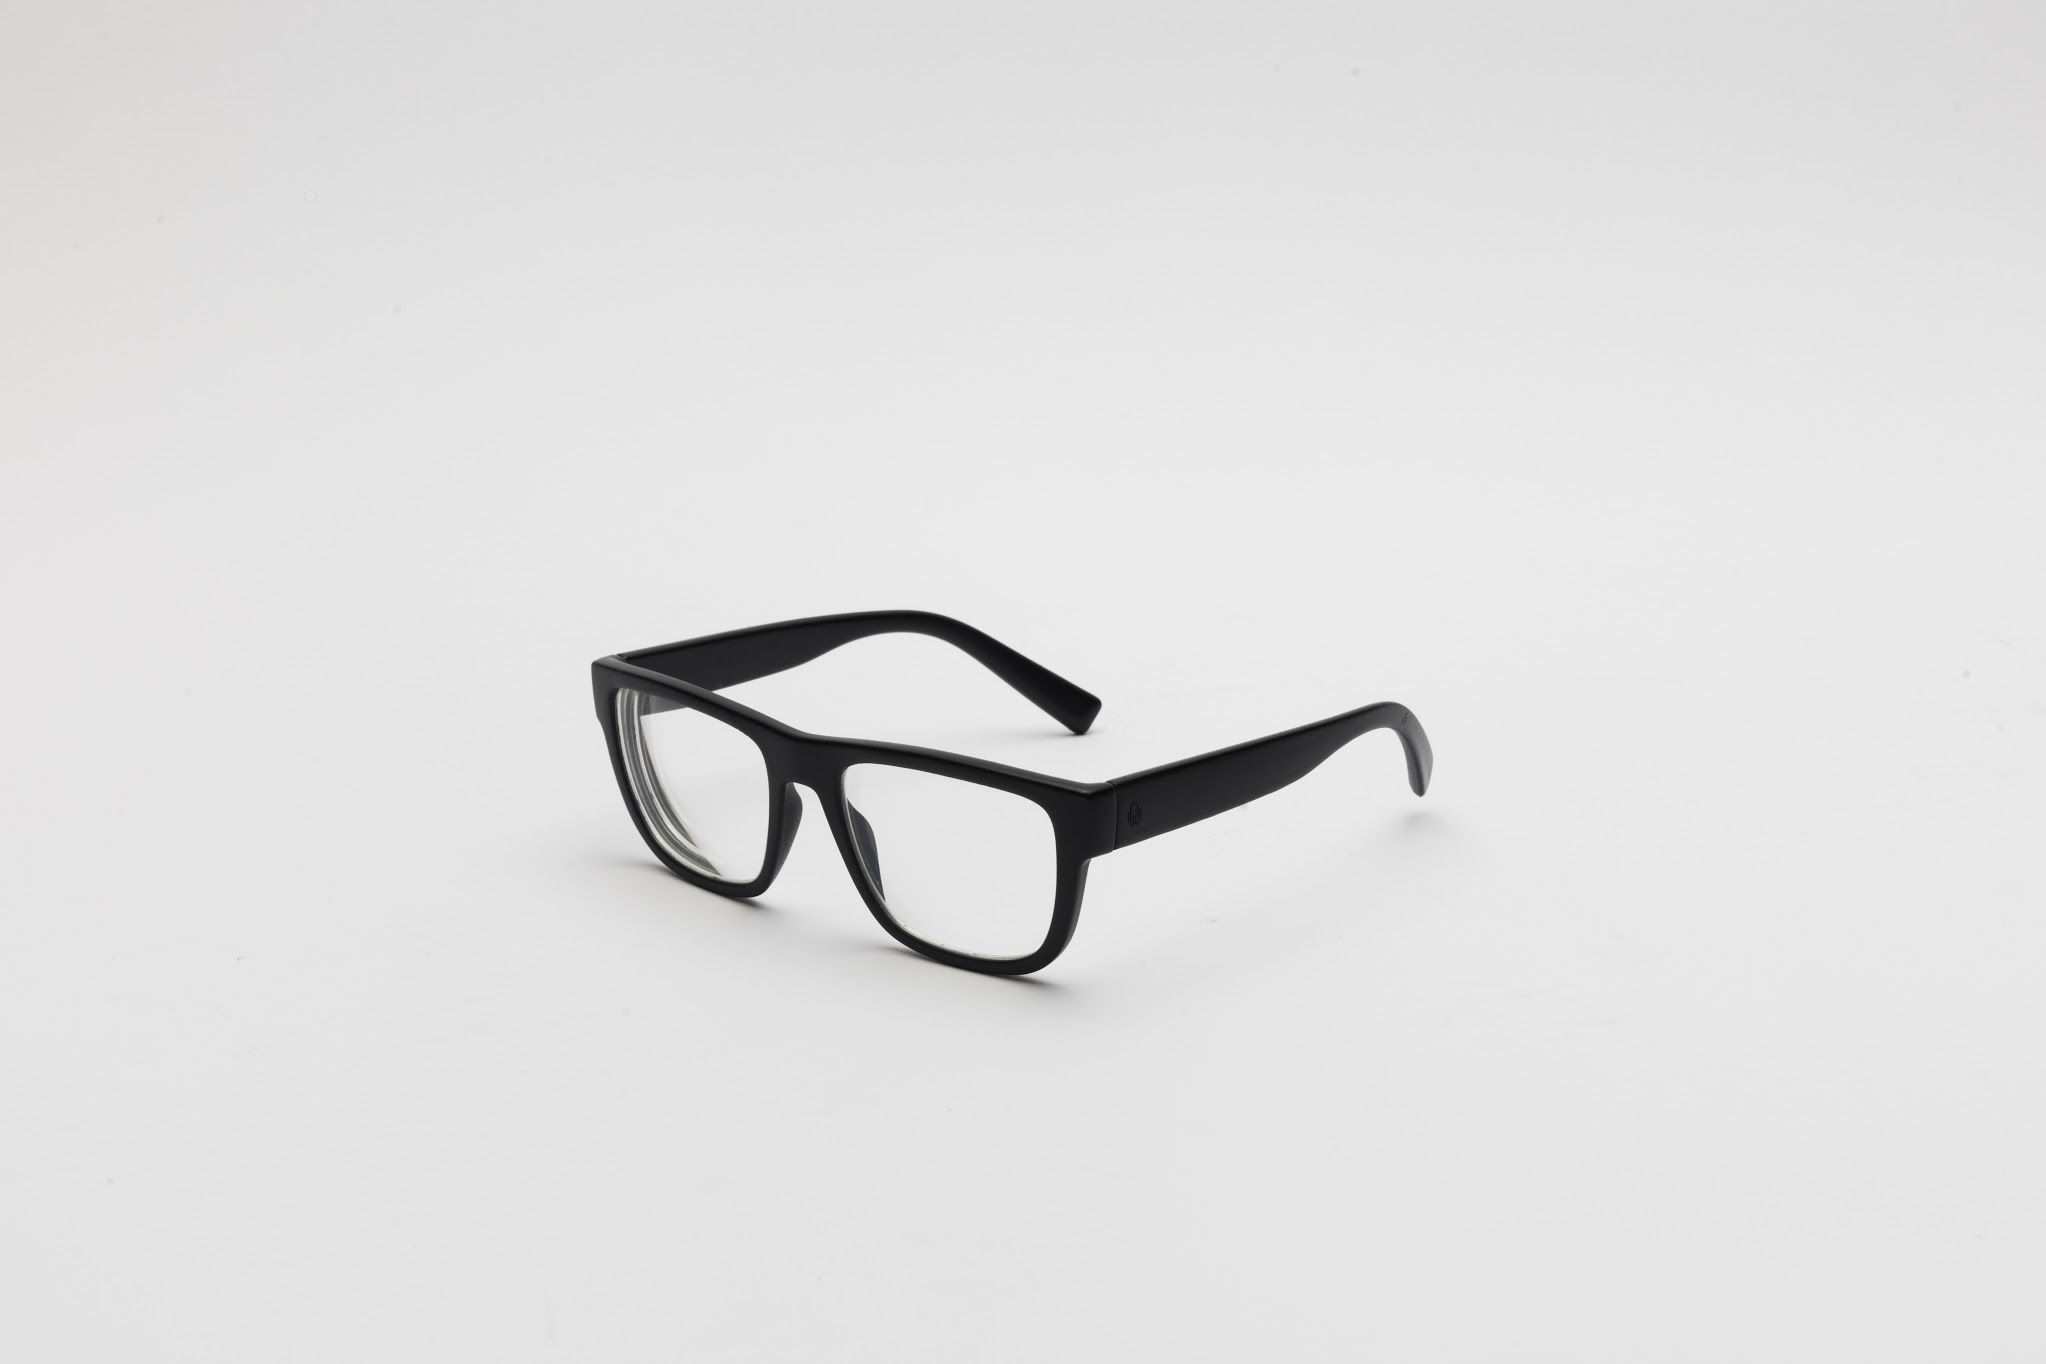 A pair of black eyeglasses that are placed in a white background.